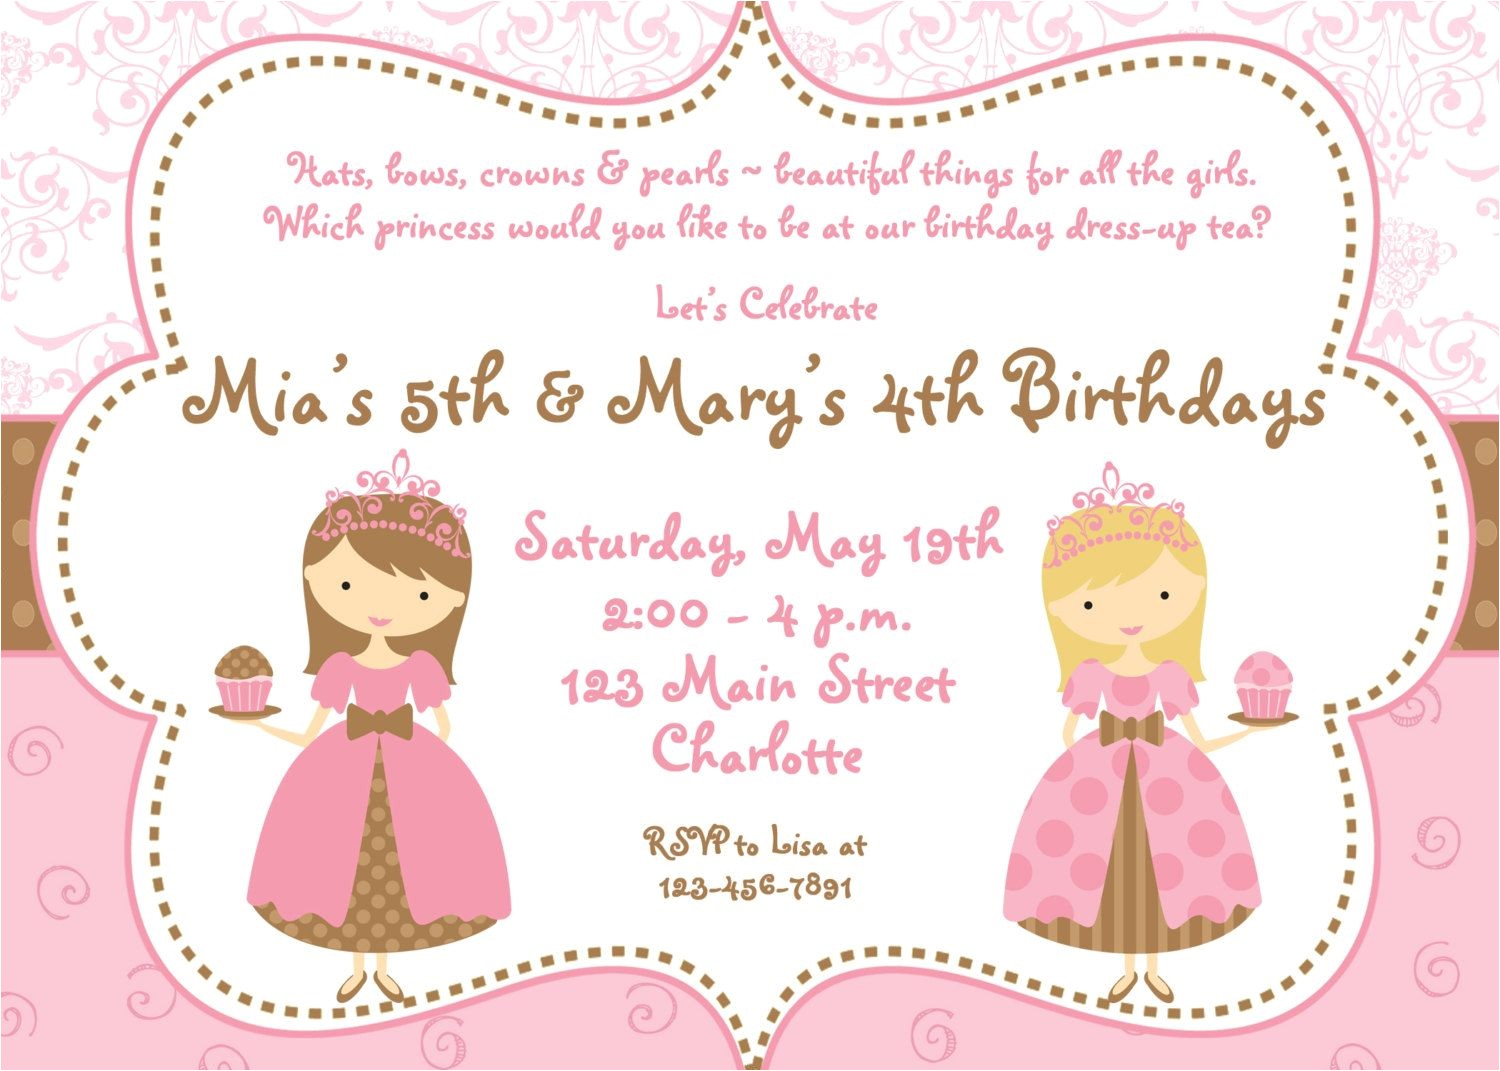 princess dress up party invitations